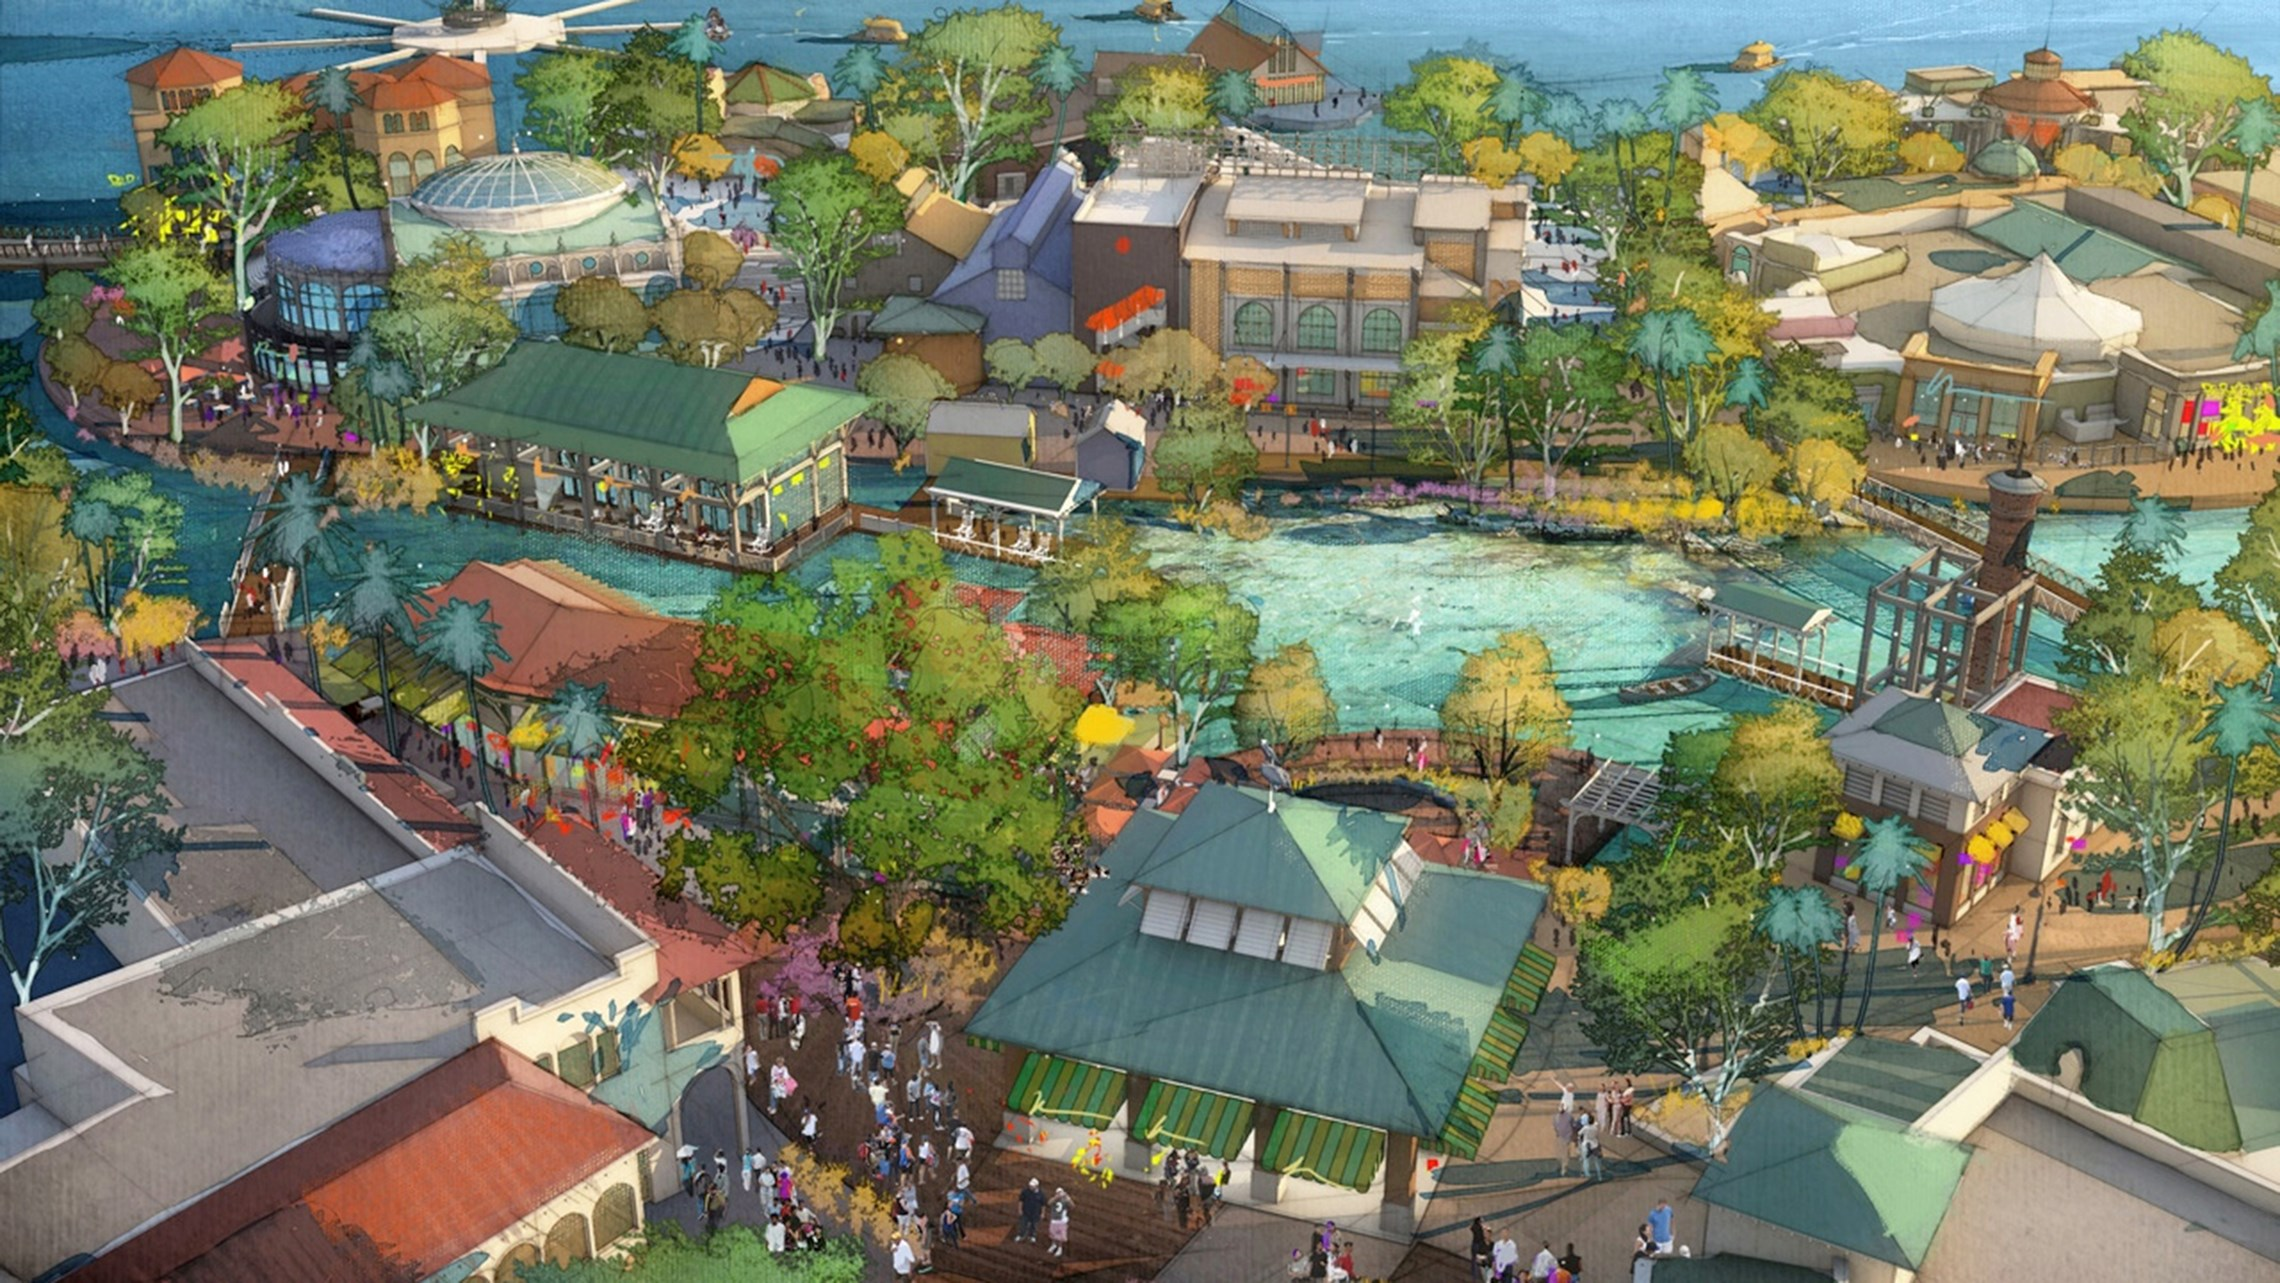 Disney Springs concept art